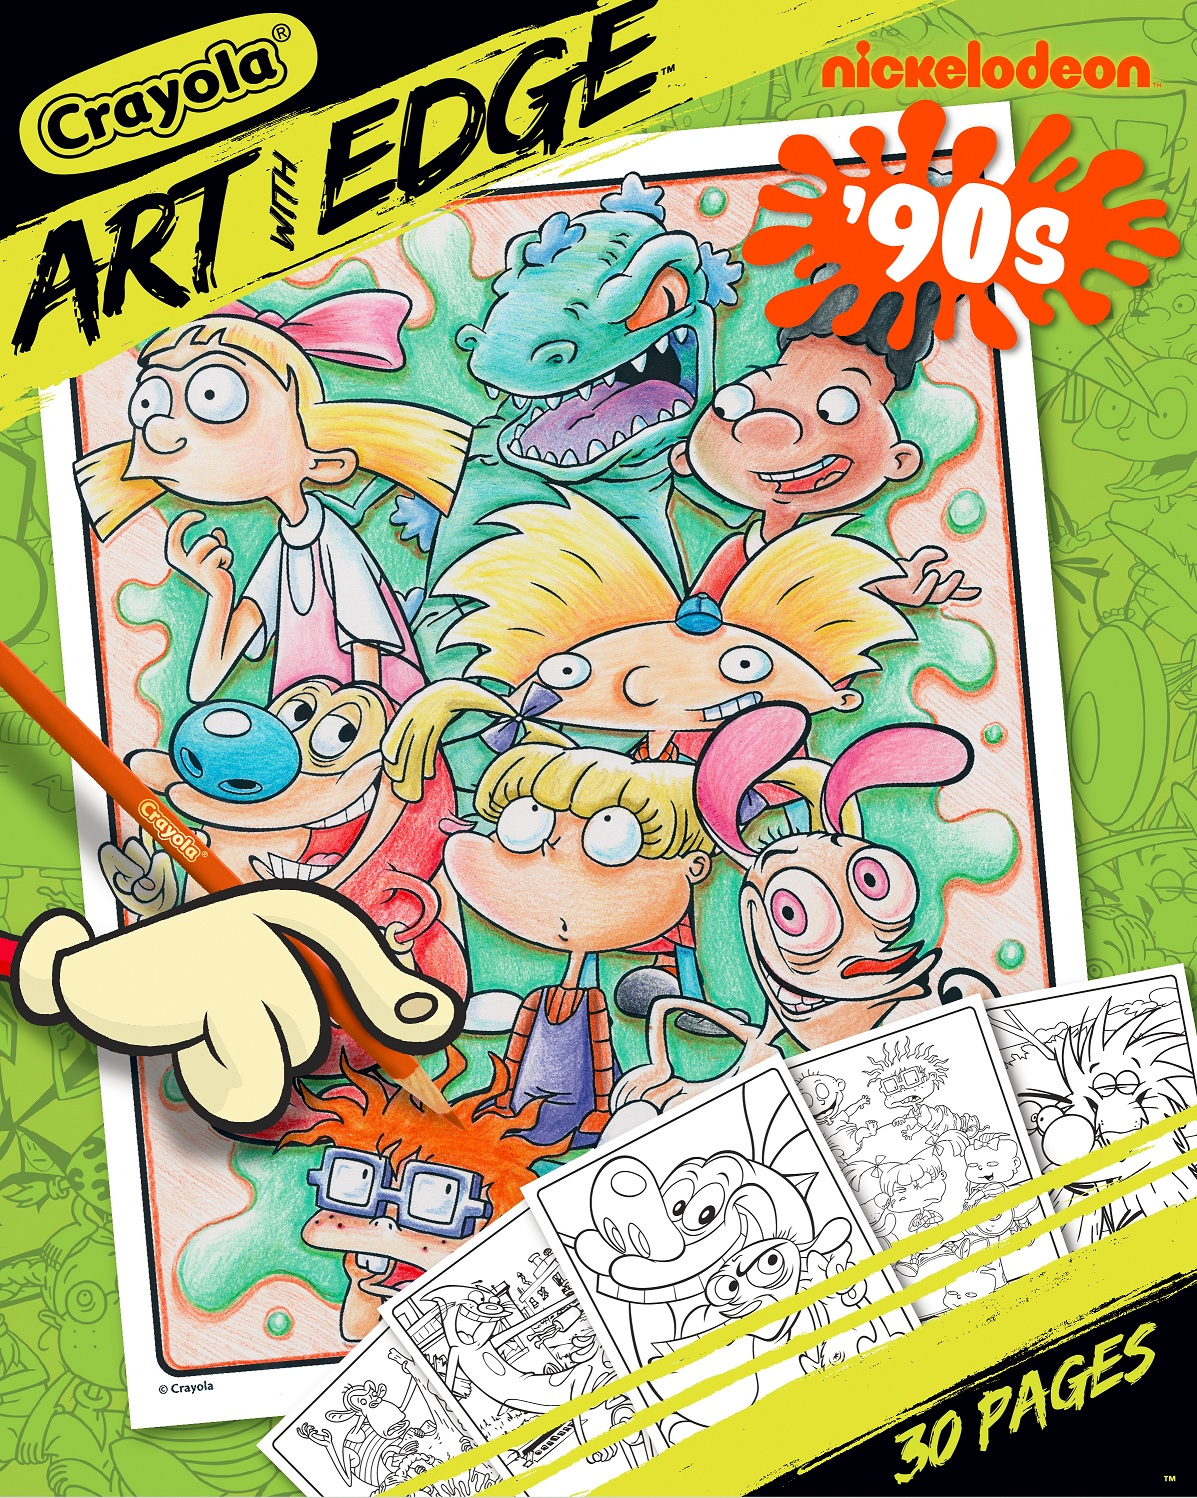 Crayola Art with Edge Nickelodeon '90s Premium Coloring Pages by Crayola